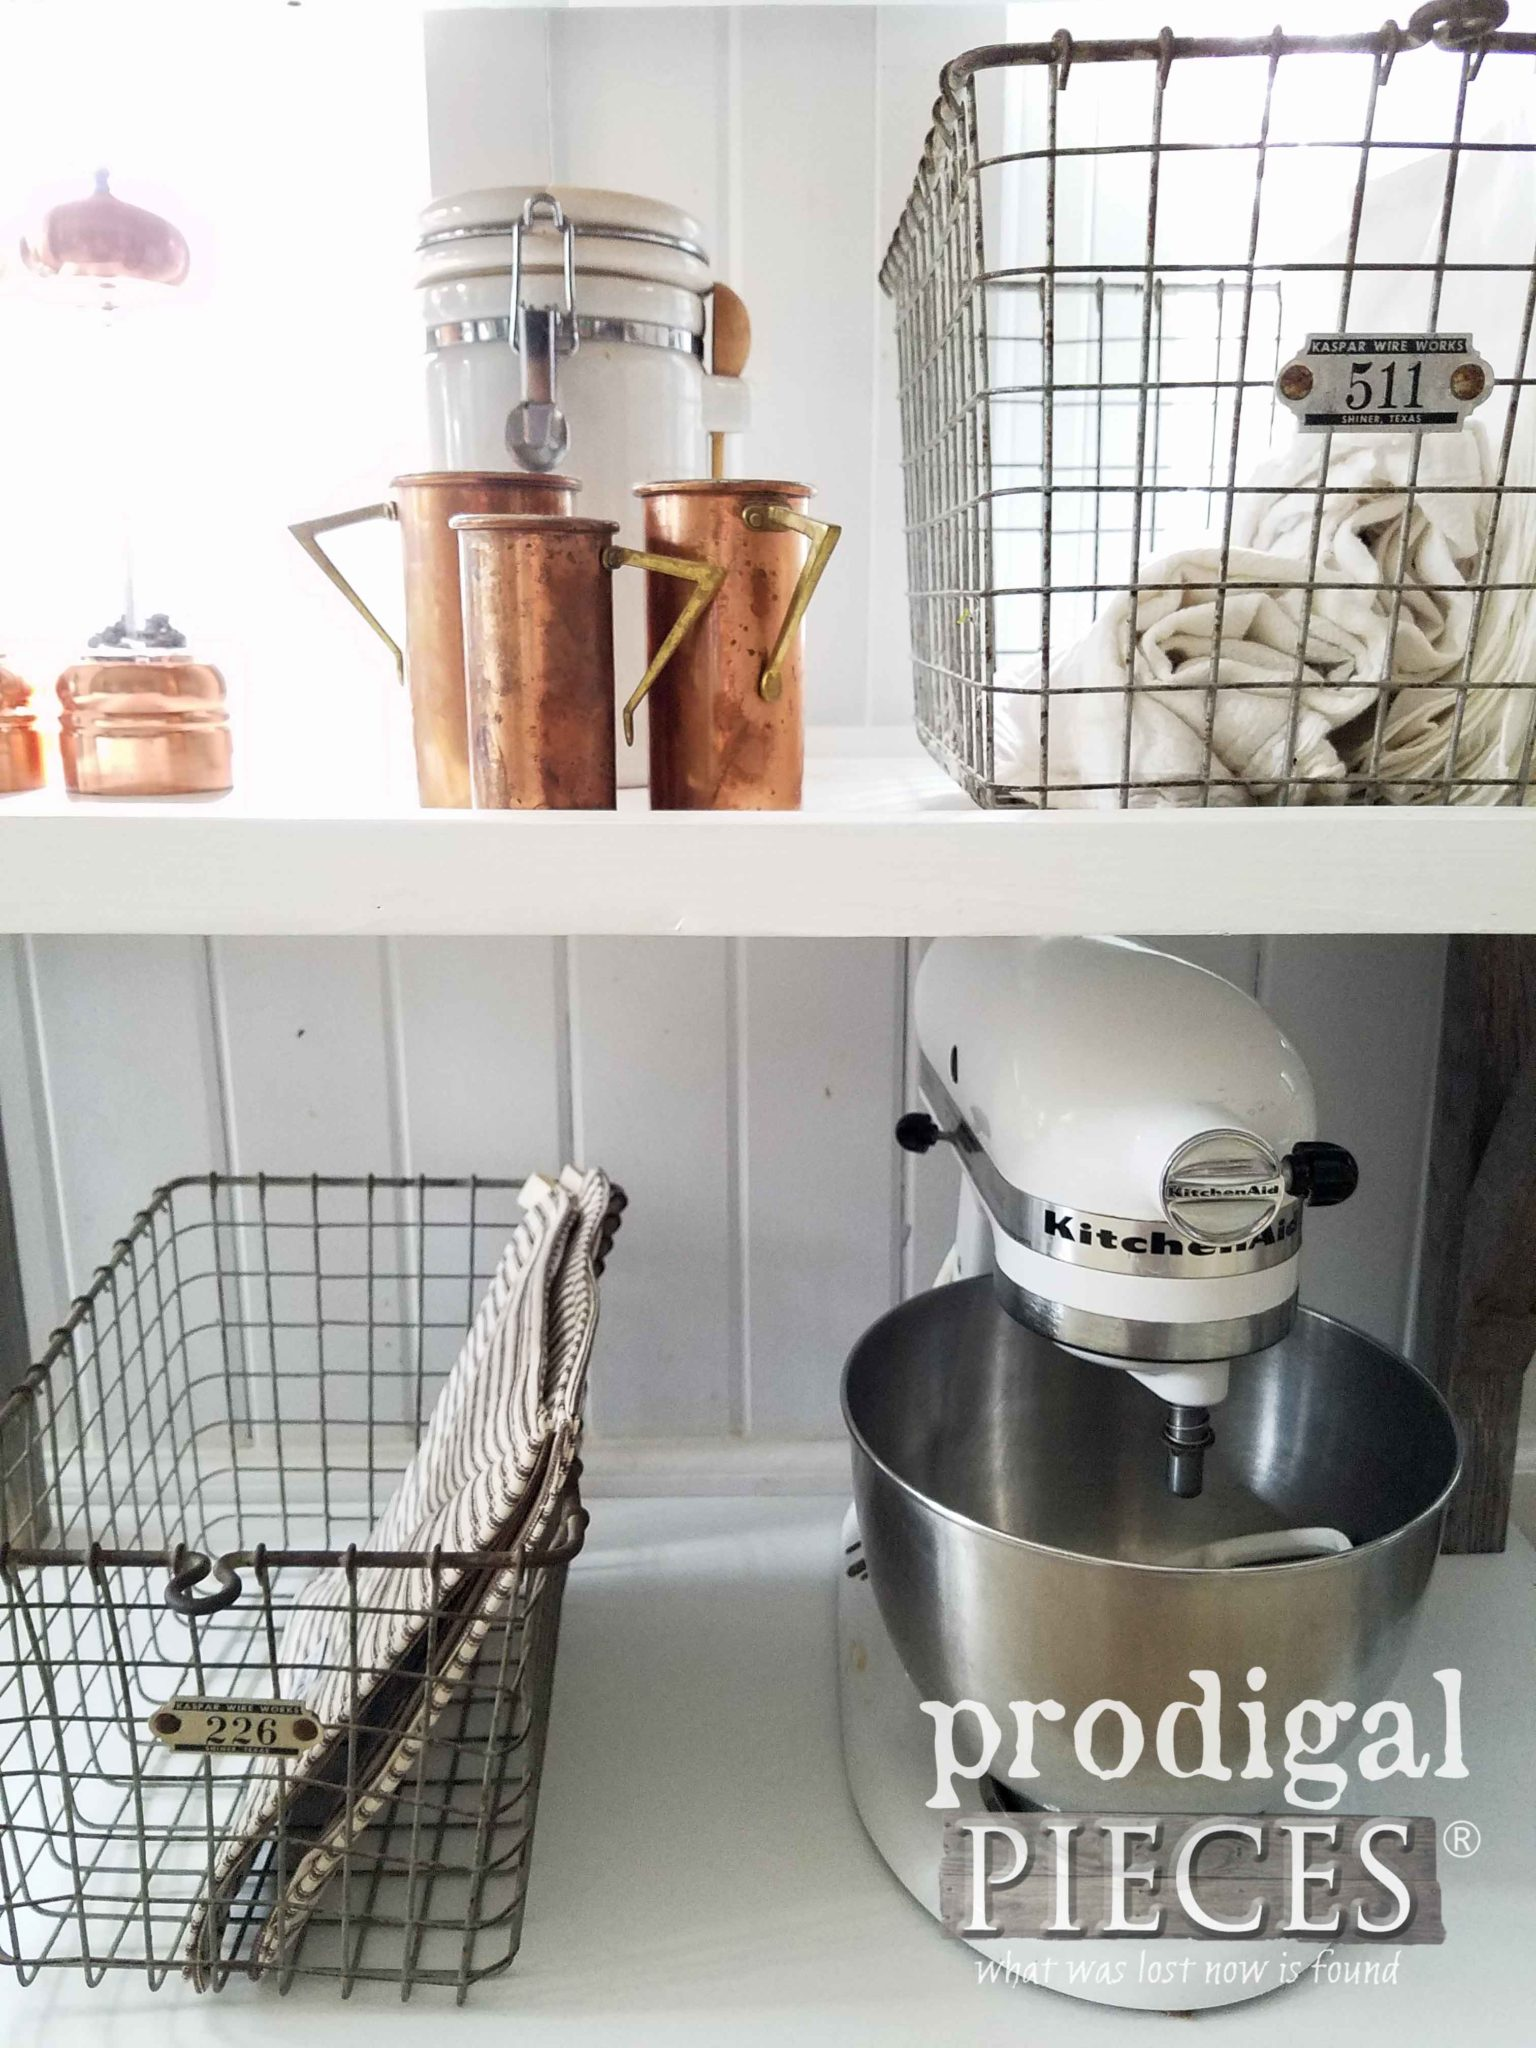 Rustic Industrial Kitchen Cart by Prodigal Pieces | prodigalpieces.com